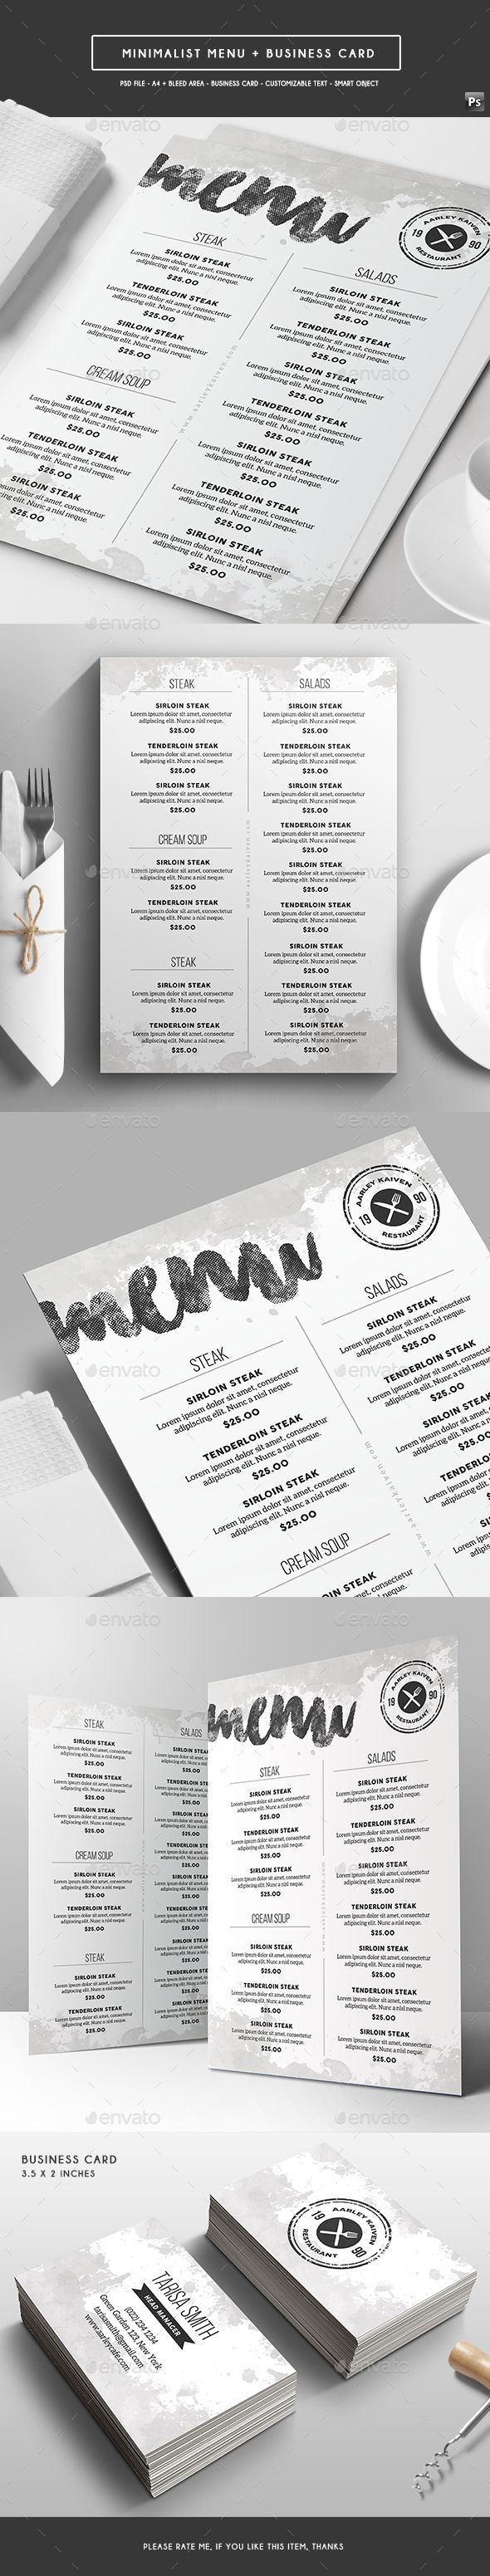 This menu seems very elegant from the way the titles look painted on. I can see this menu in a high class restaurant.